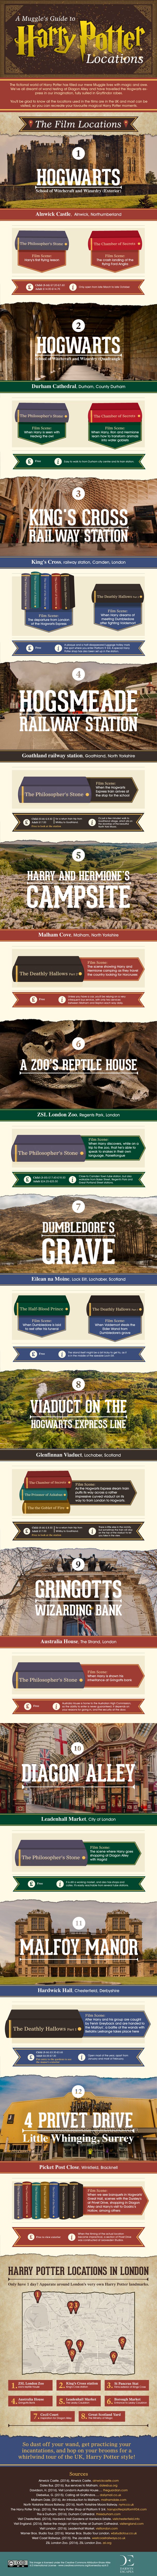 A-Muggle's-Guide-to-Harry-Potter-Locations-DV4-1